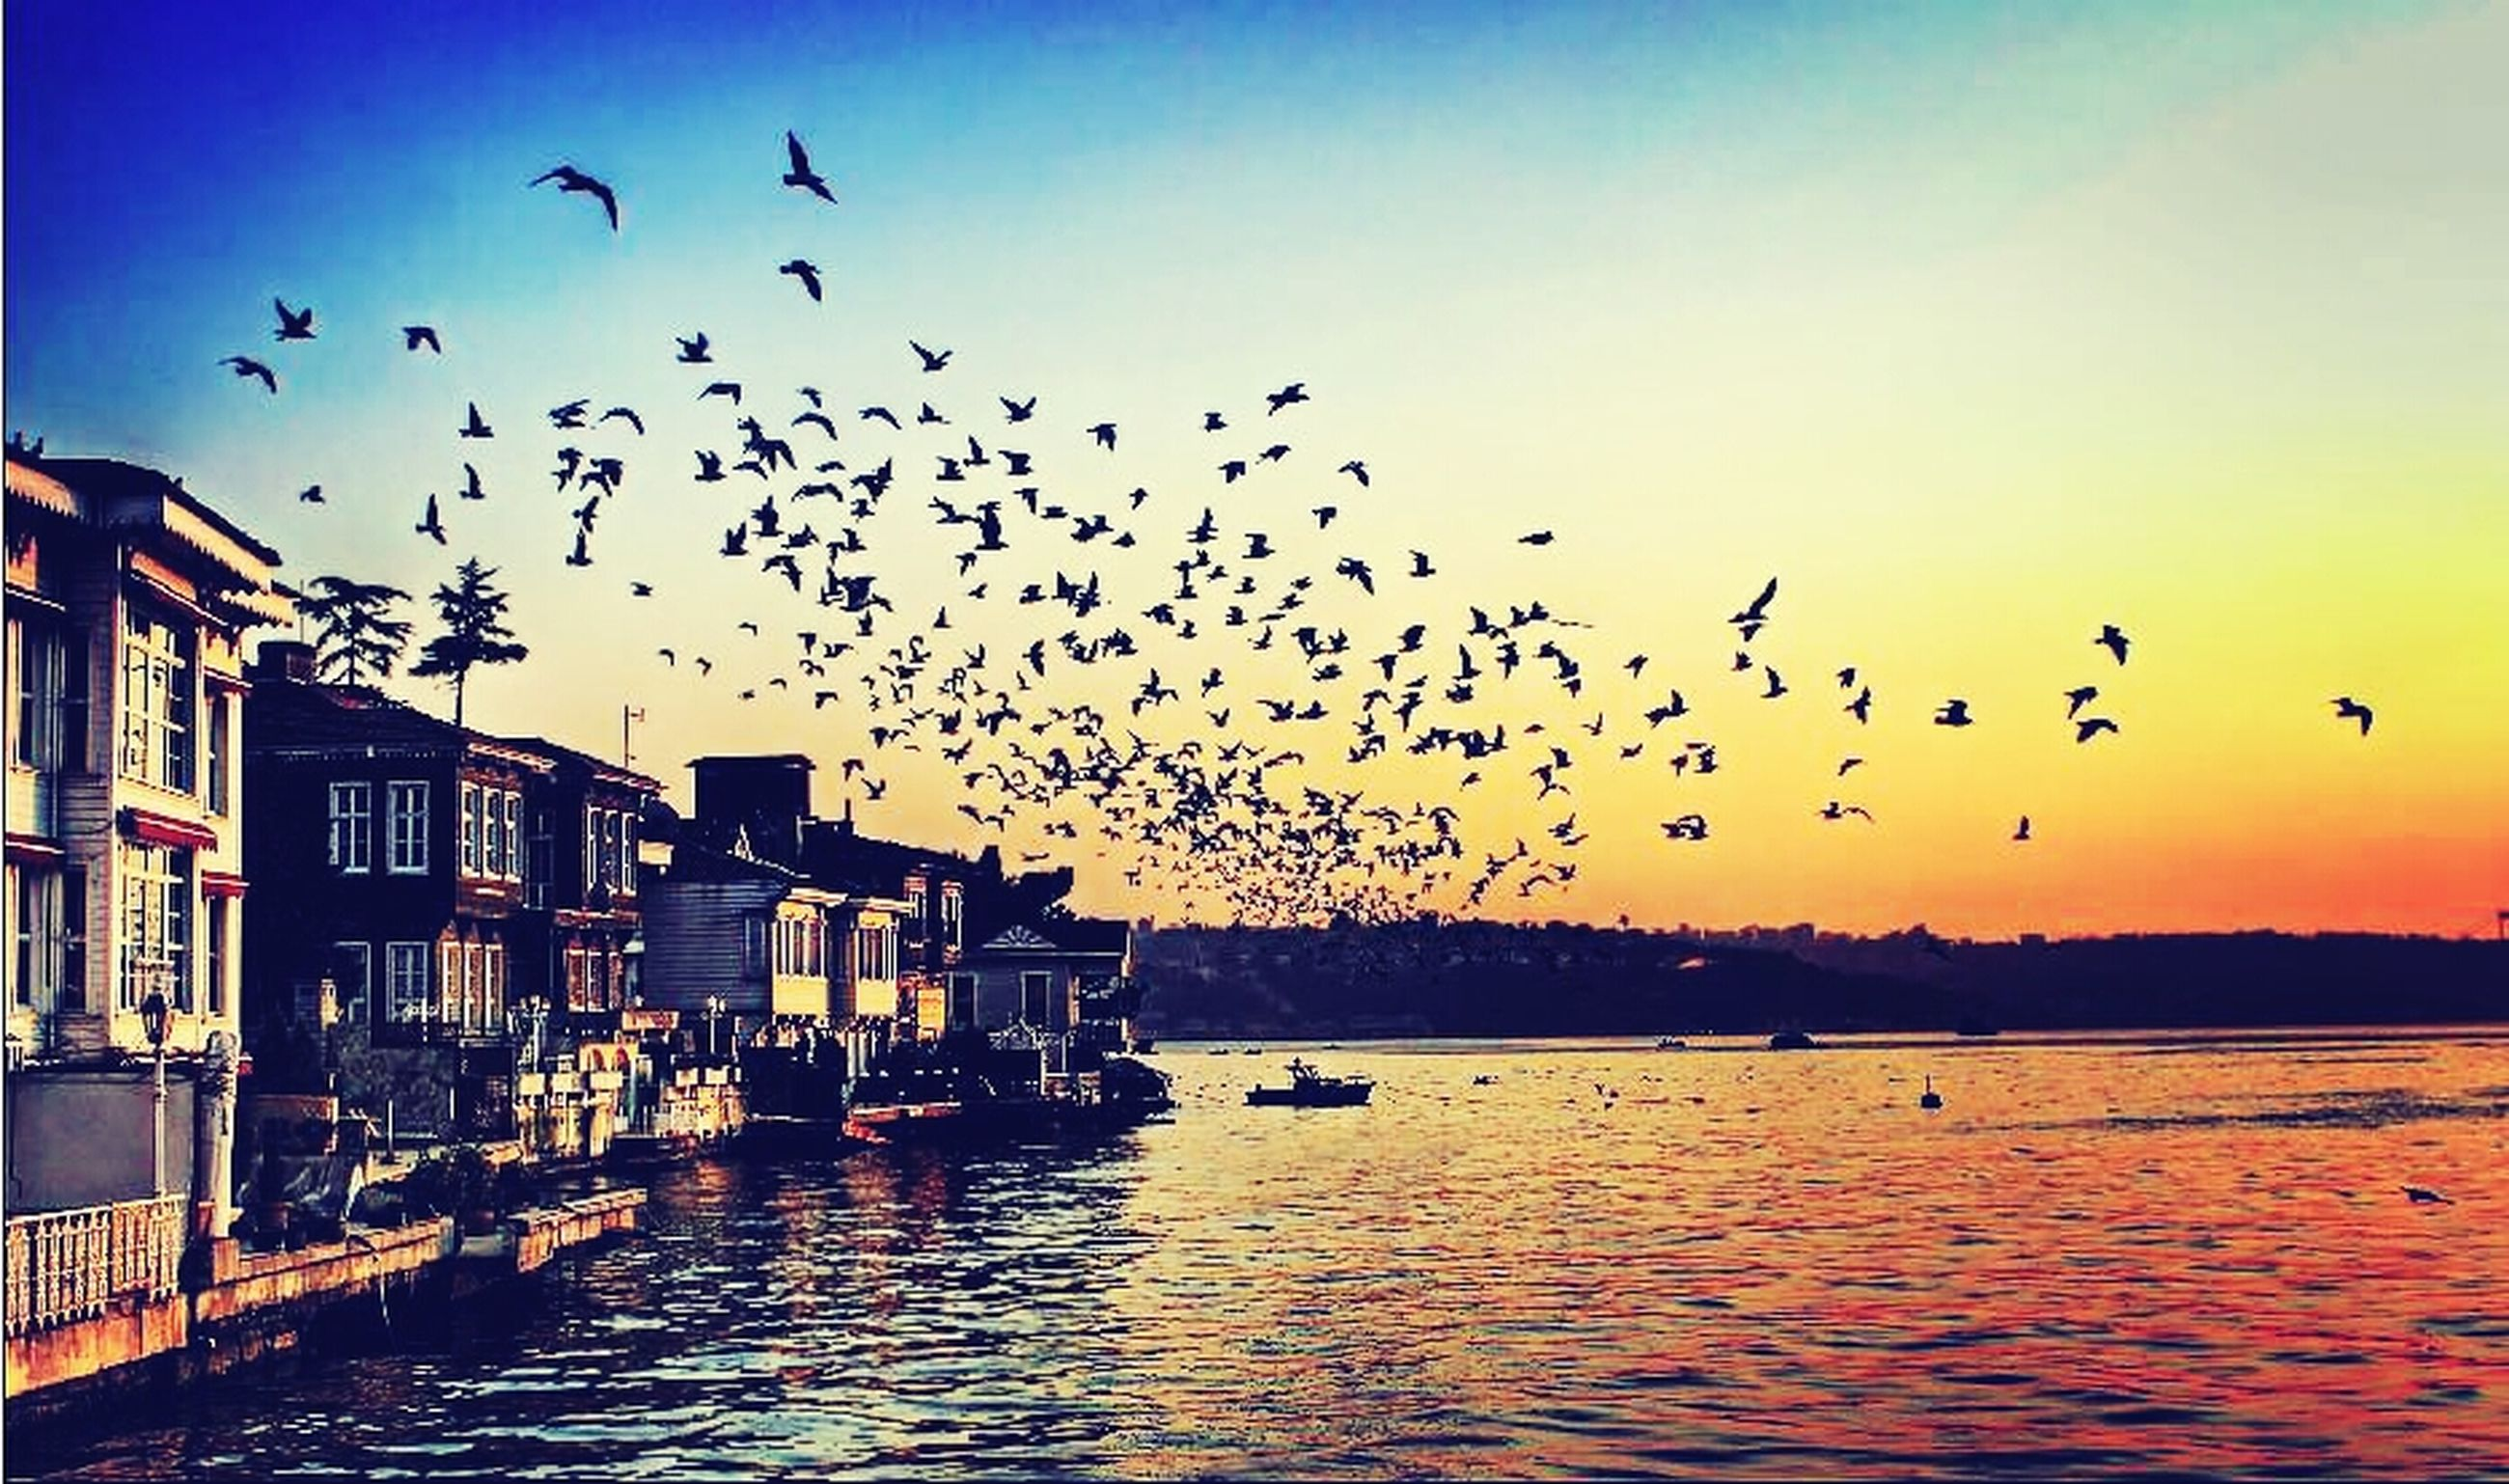 bird, flying, animal themes, animals in the wild, wildlife, flock of birds, water, sunset, mid-air, sky, built structure, medium group of animals, building exterior, architecture, waterfront, nature, river, spread wings, silhouette